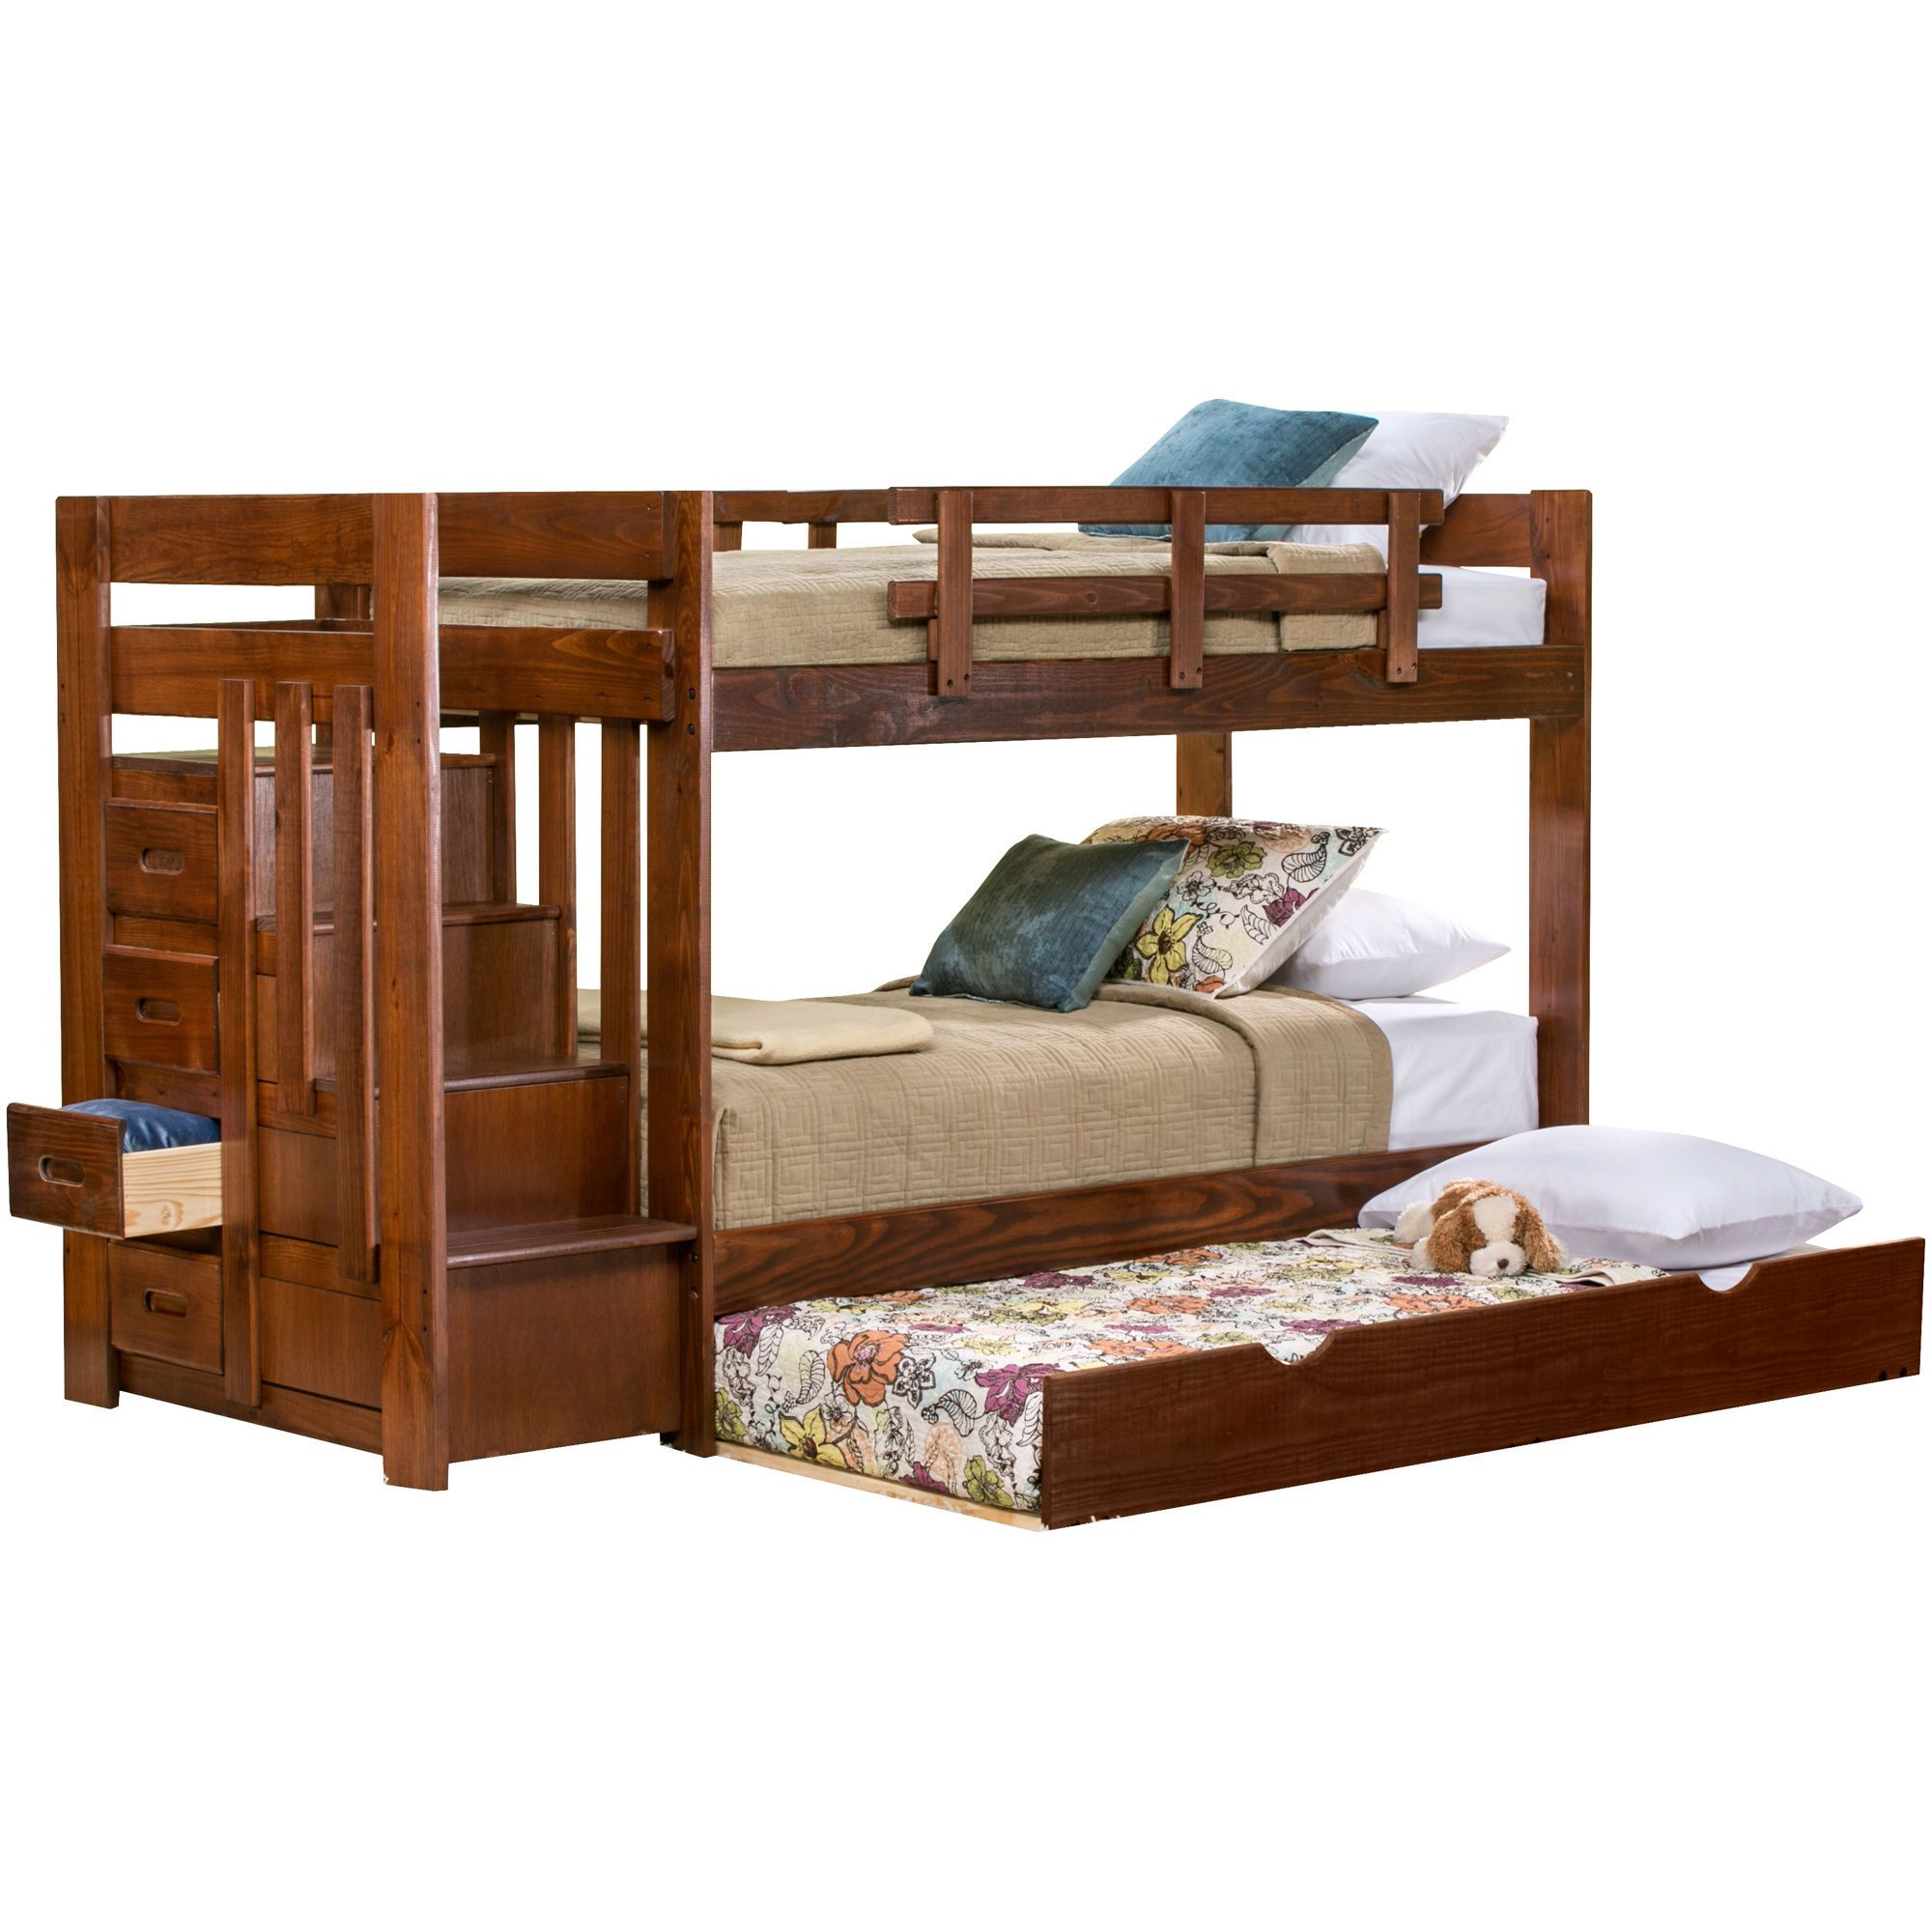 tanglewood choc tw tw stair bunk w trundl bunk bed with on Slumberland Bunk Beds id=25619